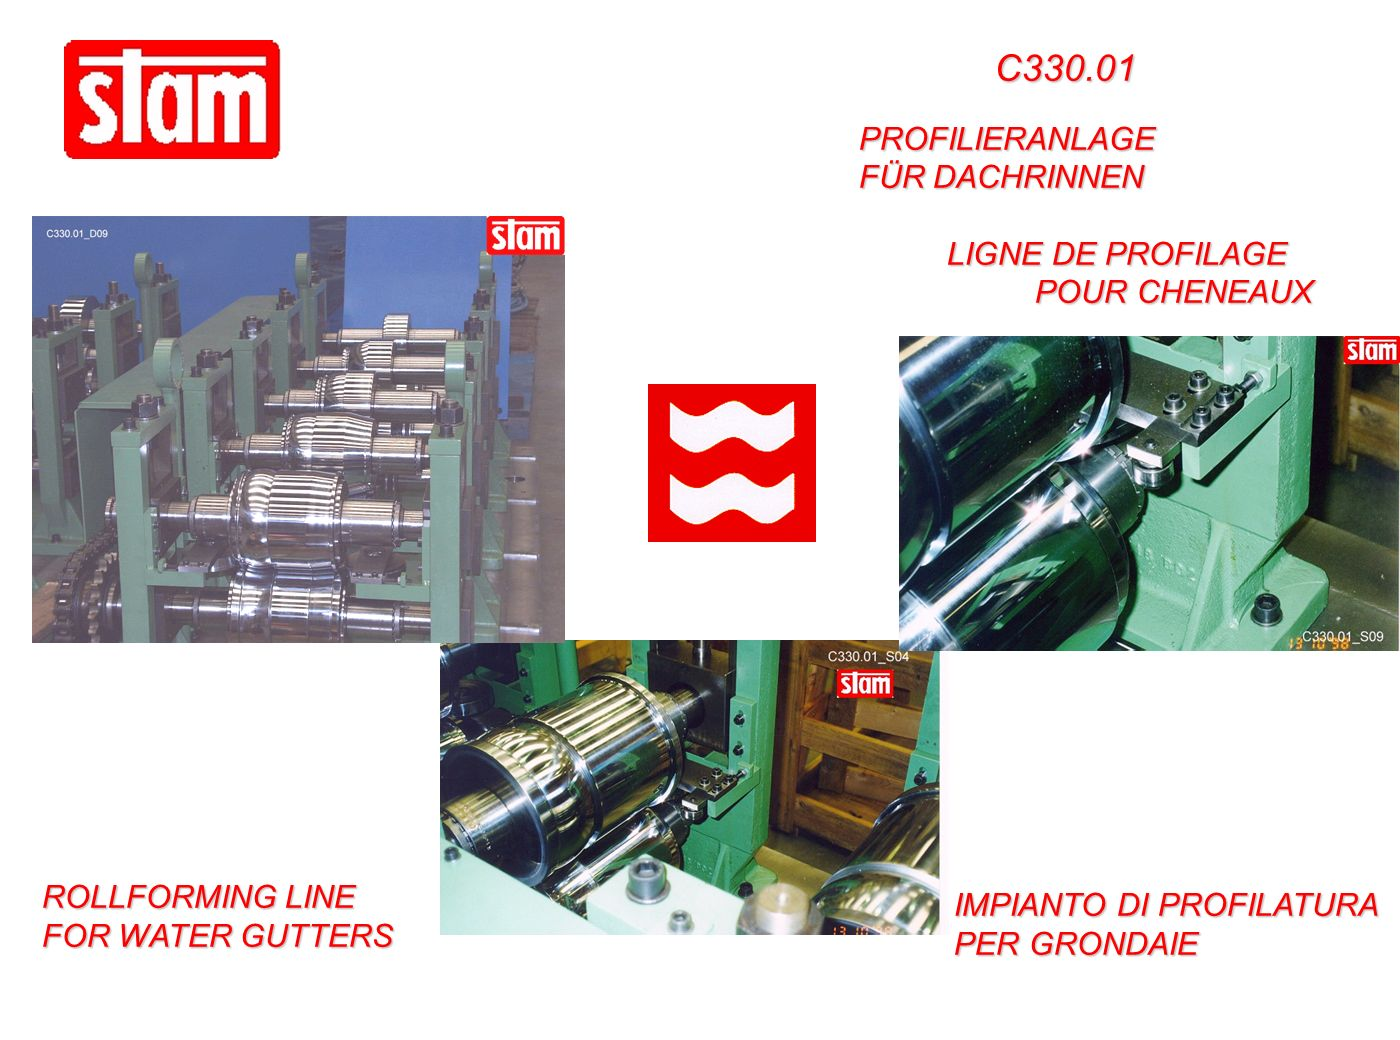 C330.01 ROLLFORMING LINE FOR WATER GUTTERS PROFILIERANLAGE FÜR DACHRINNEN PROFILIERANLAGE FÜR DACHRINNEN LIGNE DE PROFILAGE POUR CHENEAUX LIGNE DE PROFILAGE POUR CHENEAUX IMPIANTO DI PROFILATURA PER GRONDAIE IMPIANTO DI PROFILATURA PER GRONDAIE